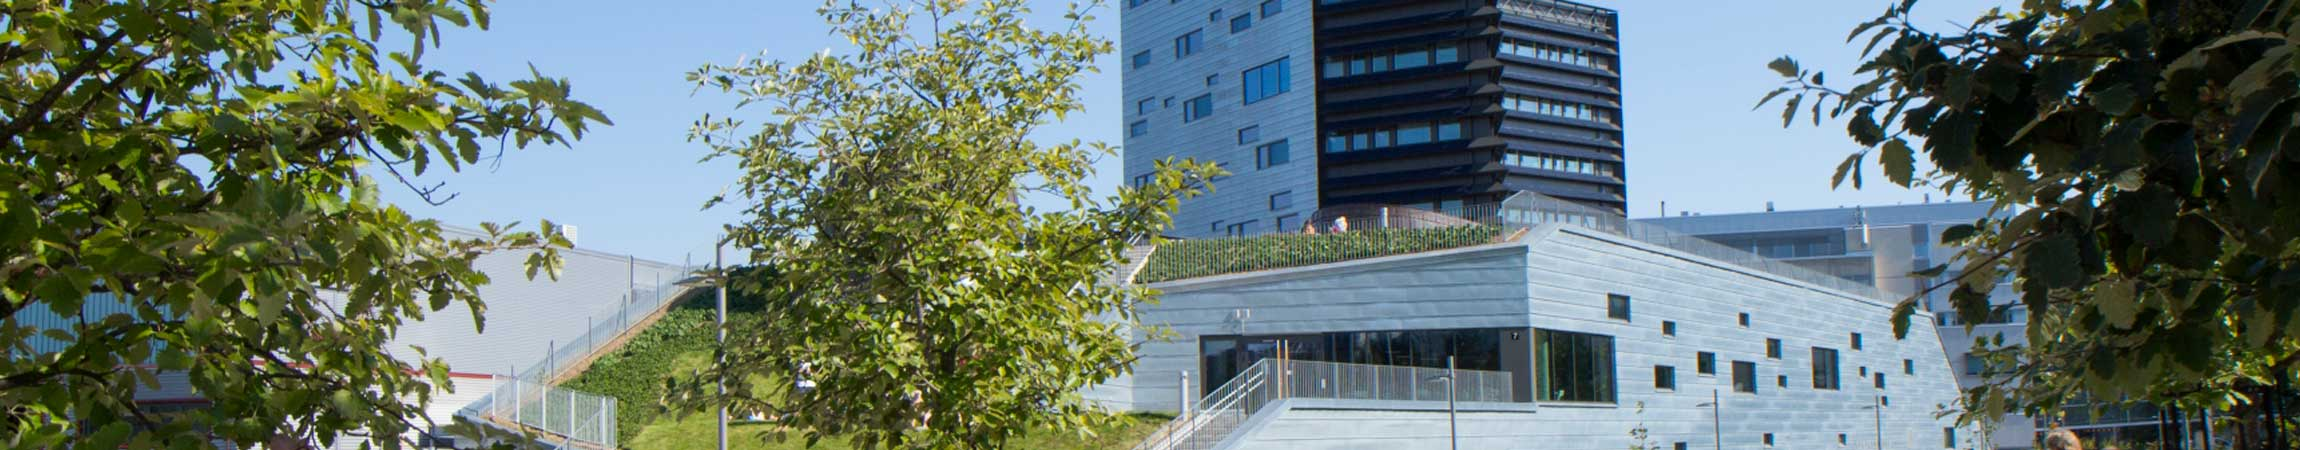 New multidisciplinary Tampere University created from university merger in Finland